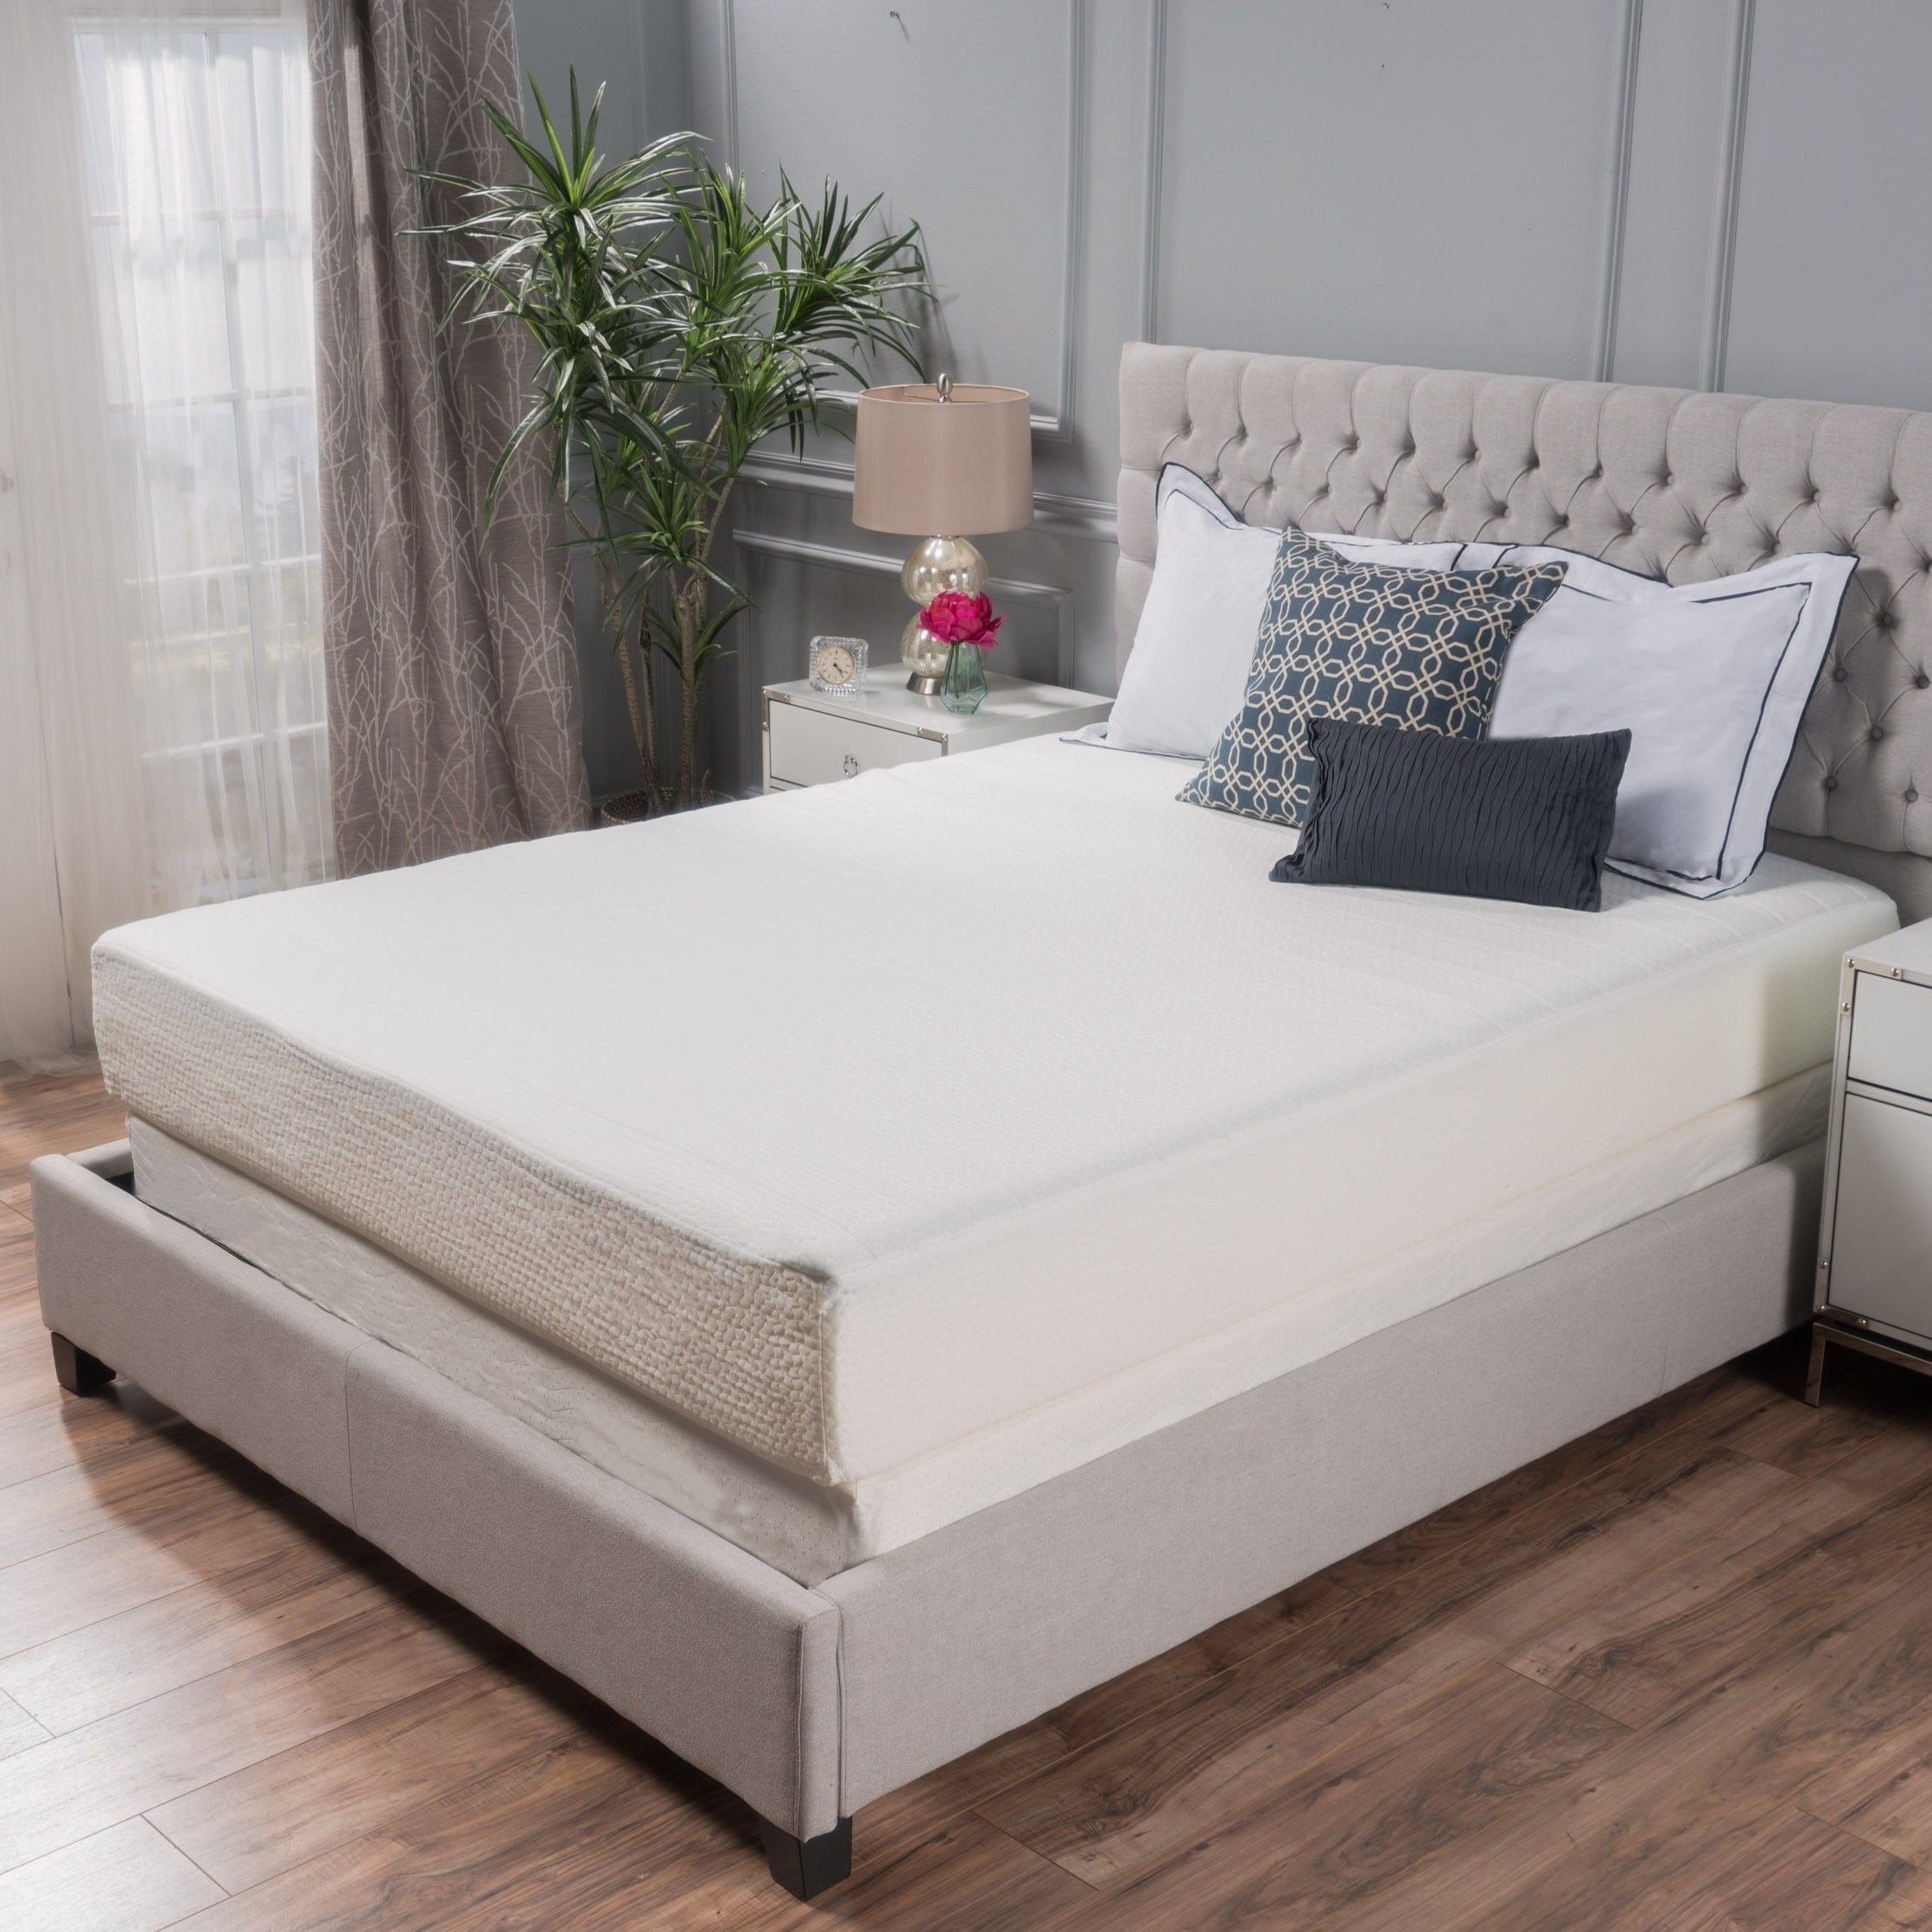 Choice 10 inch Queen size Memory Foam Mattress by Christopher